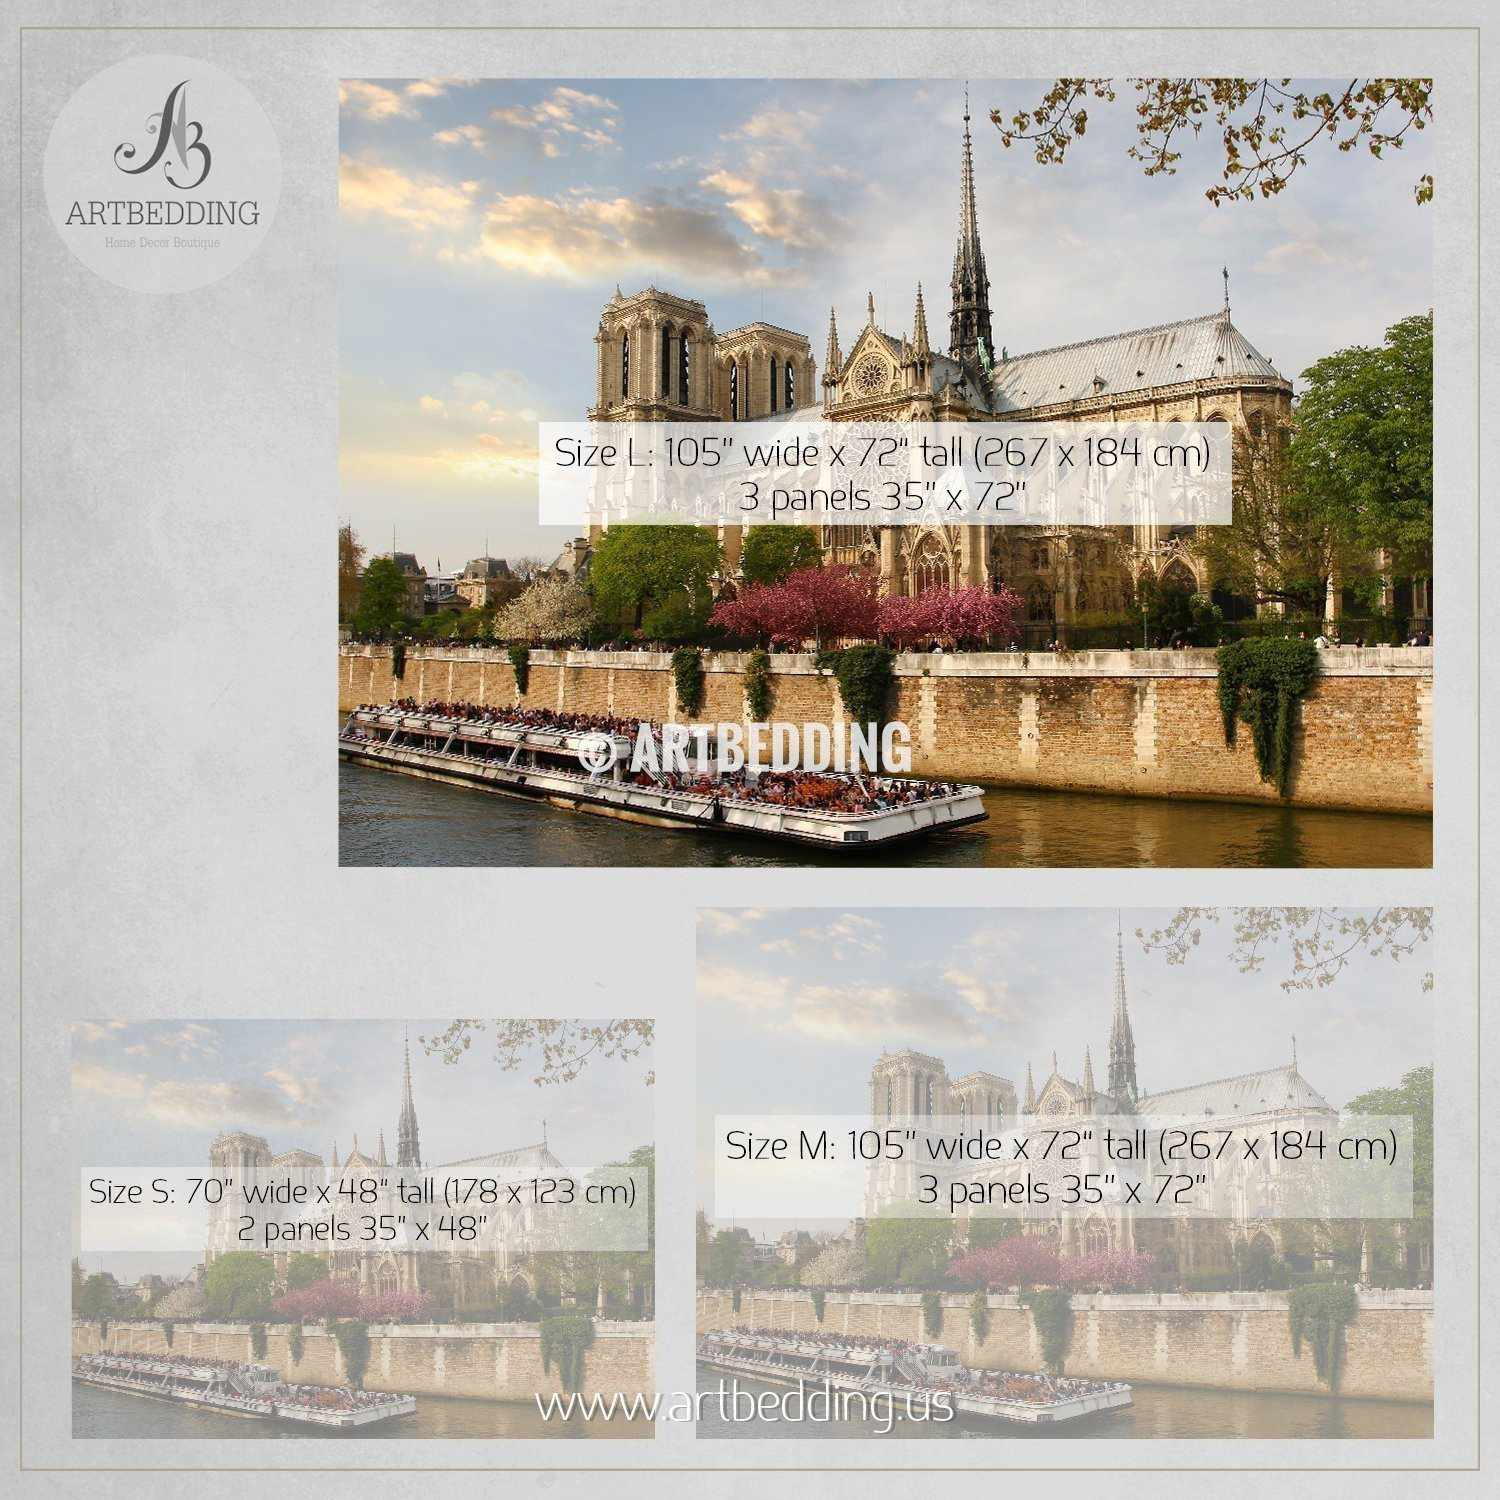 ... Notre Dame With Boat On Seine, France Wall Mural, Photo Mural, Wall  Décor